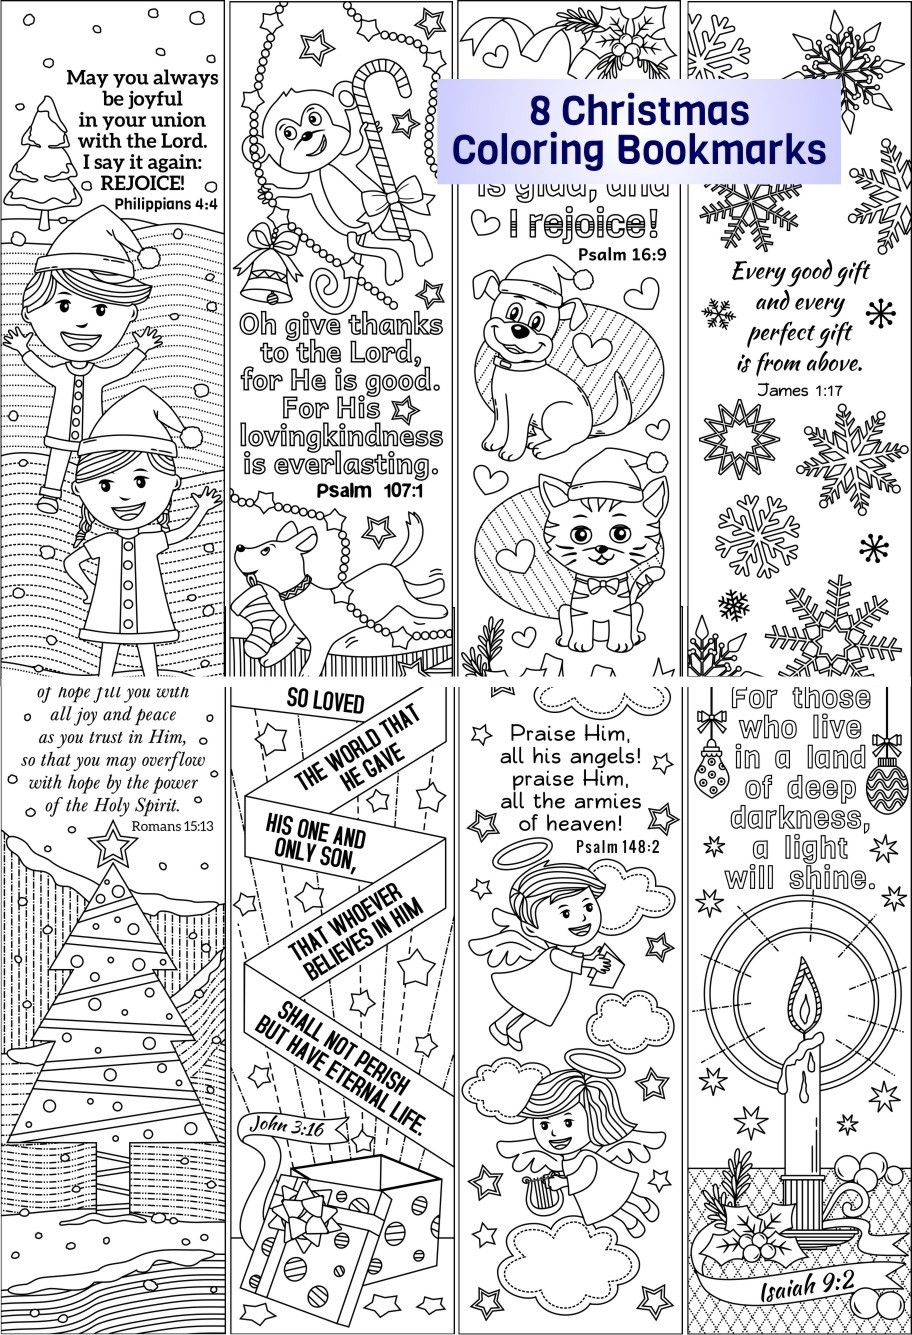 Christmas Coloring Bookmarks (plus colored items)